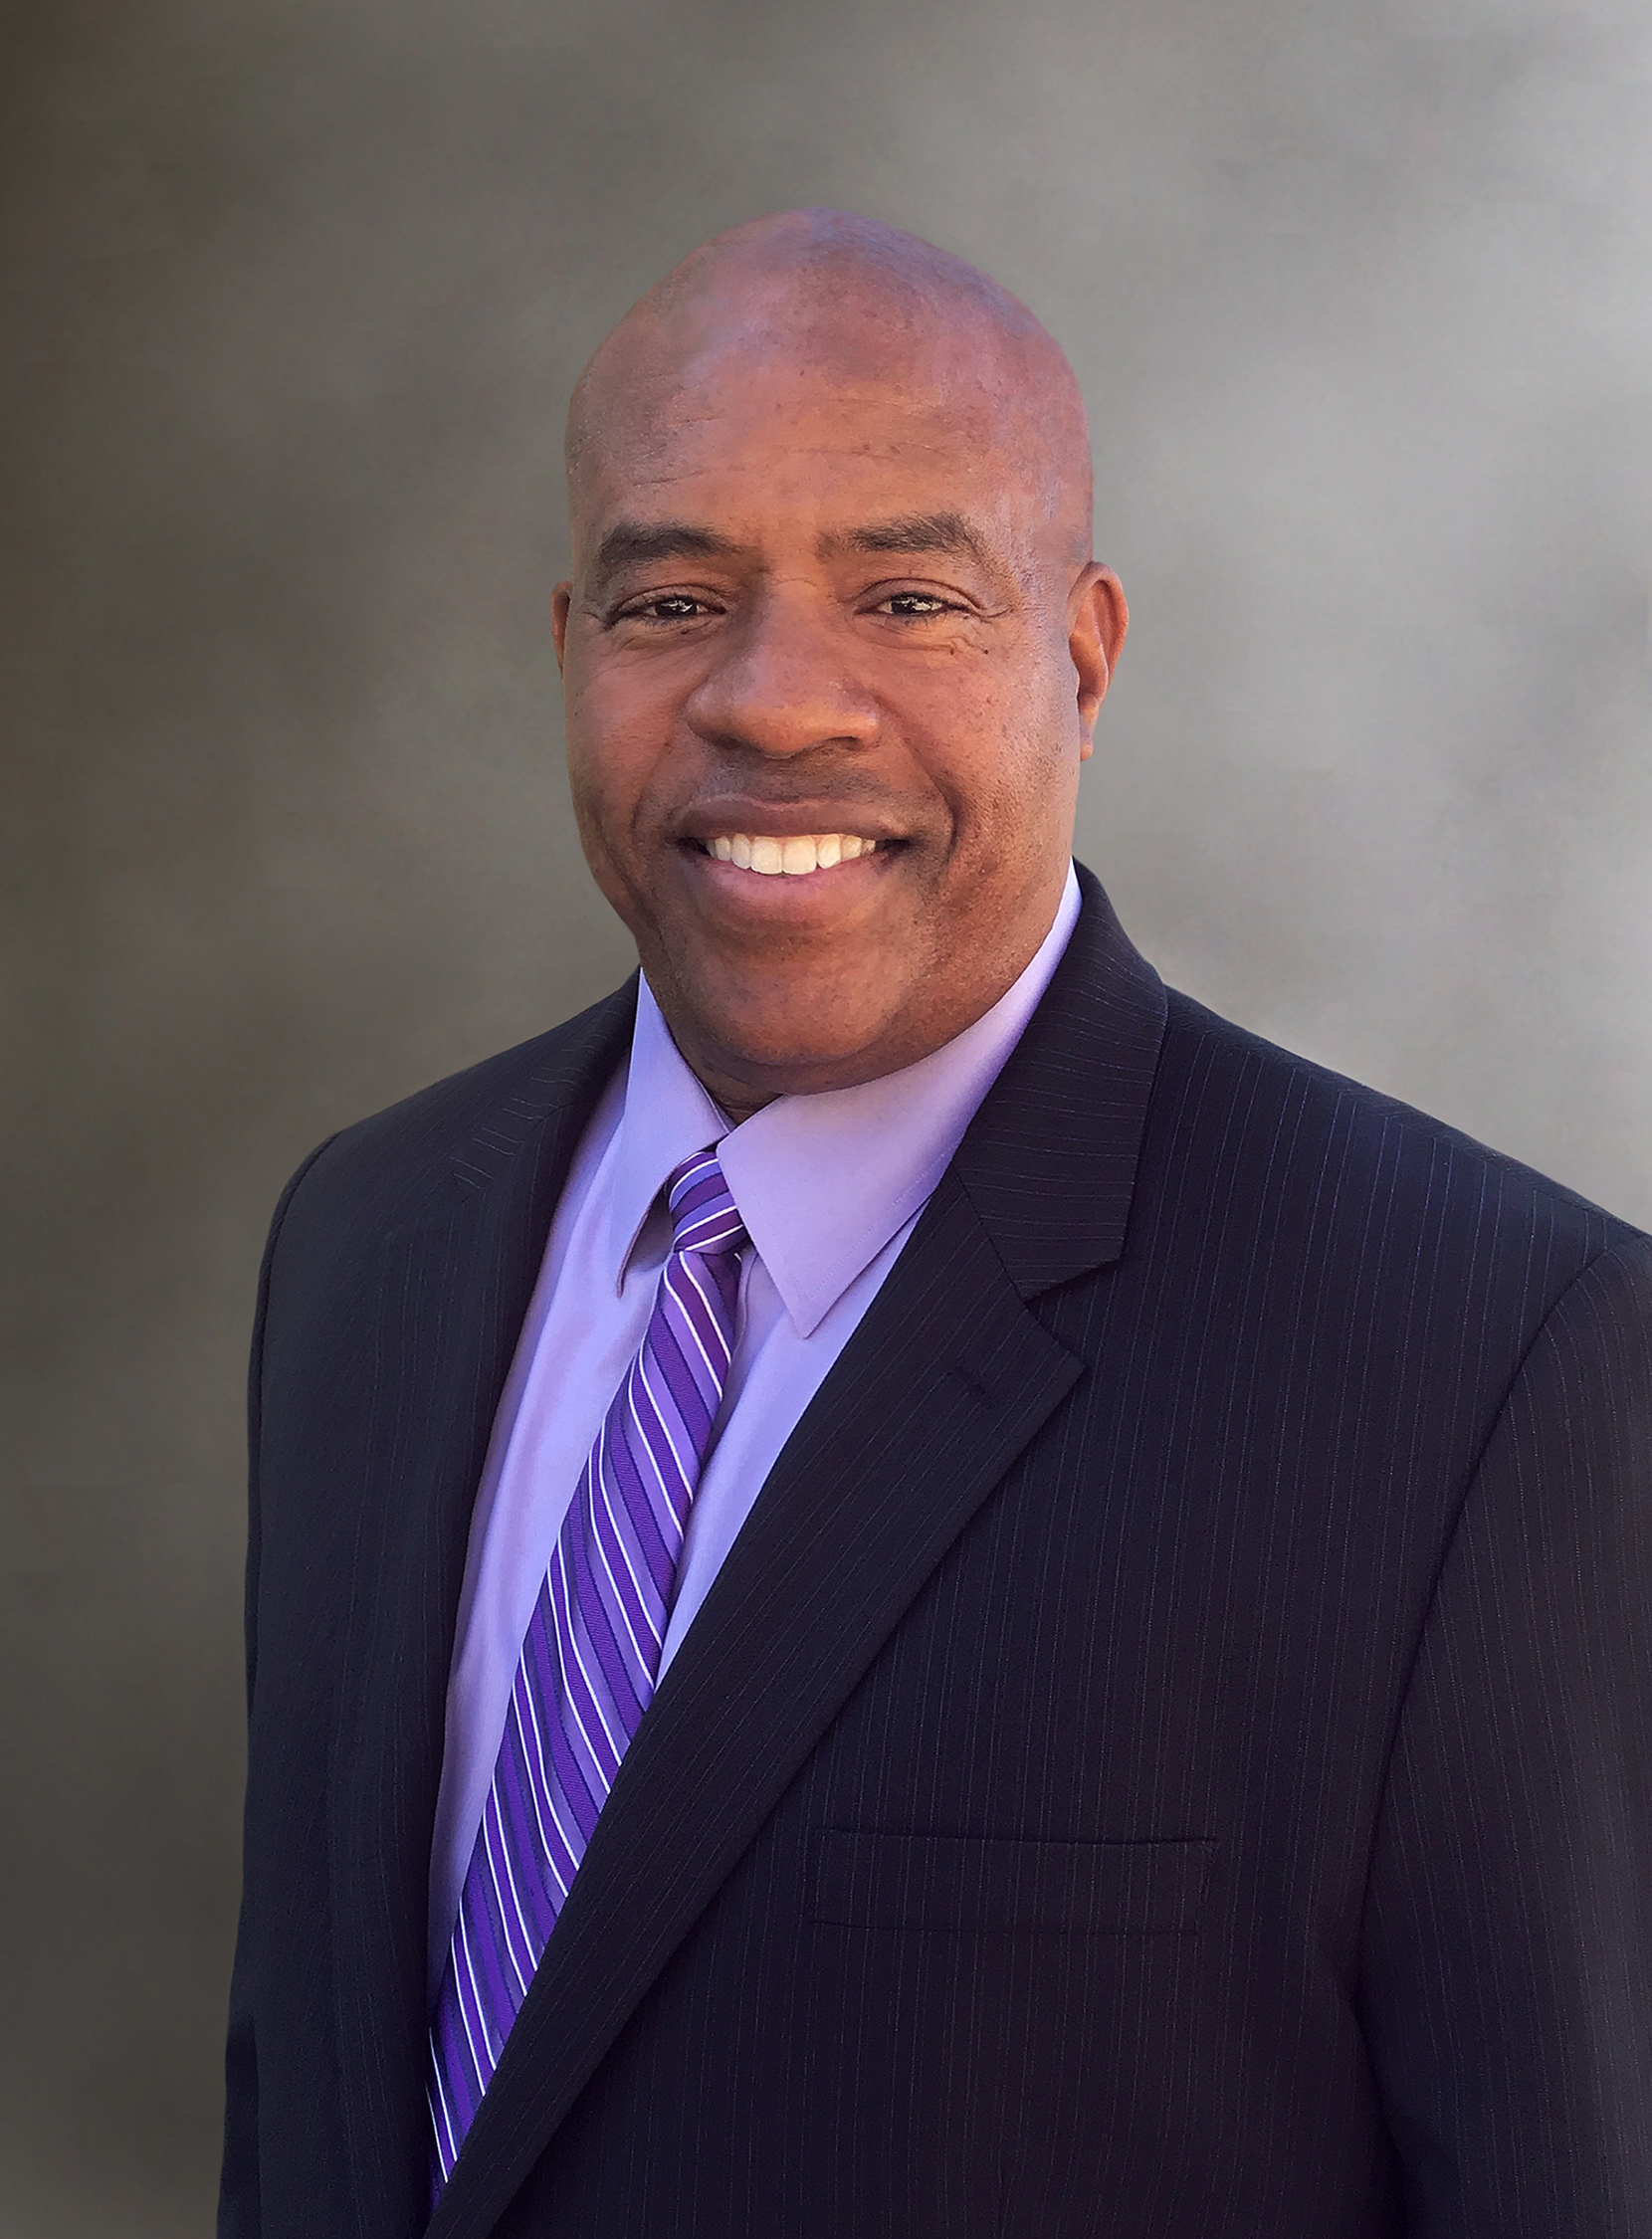 Picture of Myron Anderson, Ph.D.